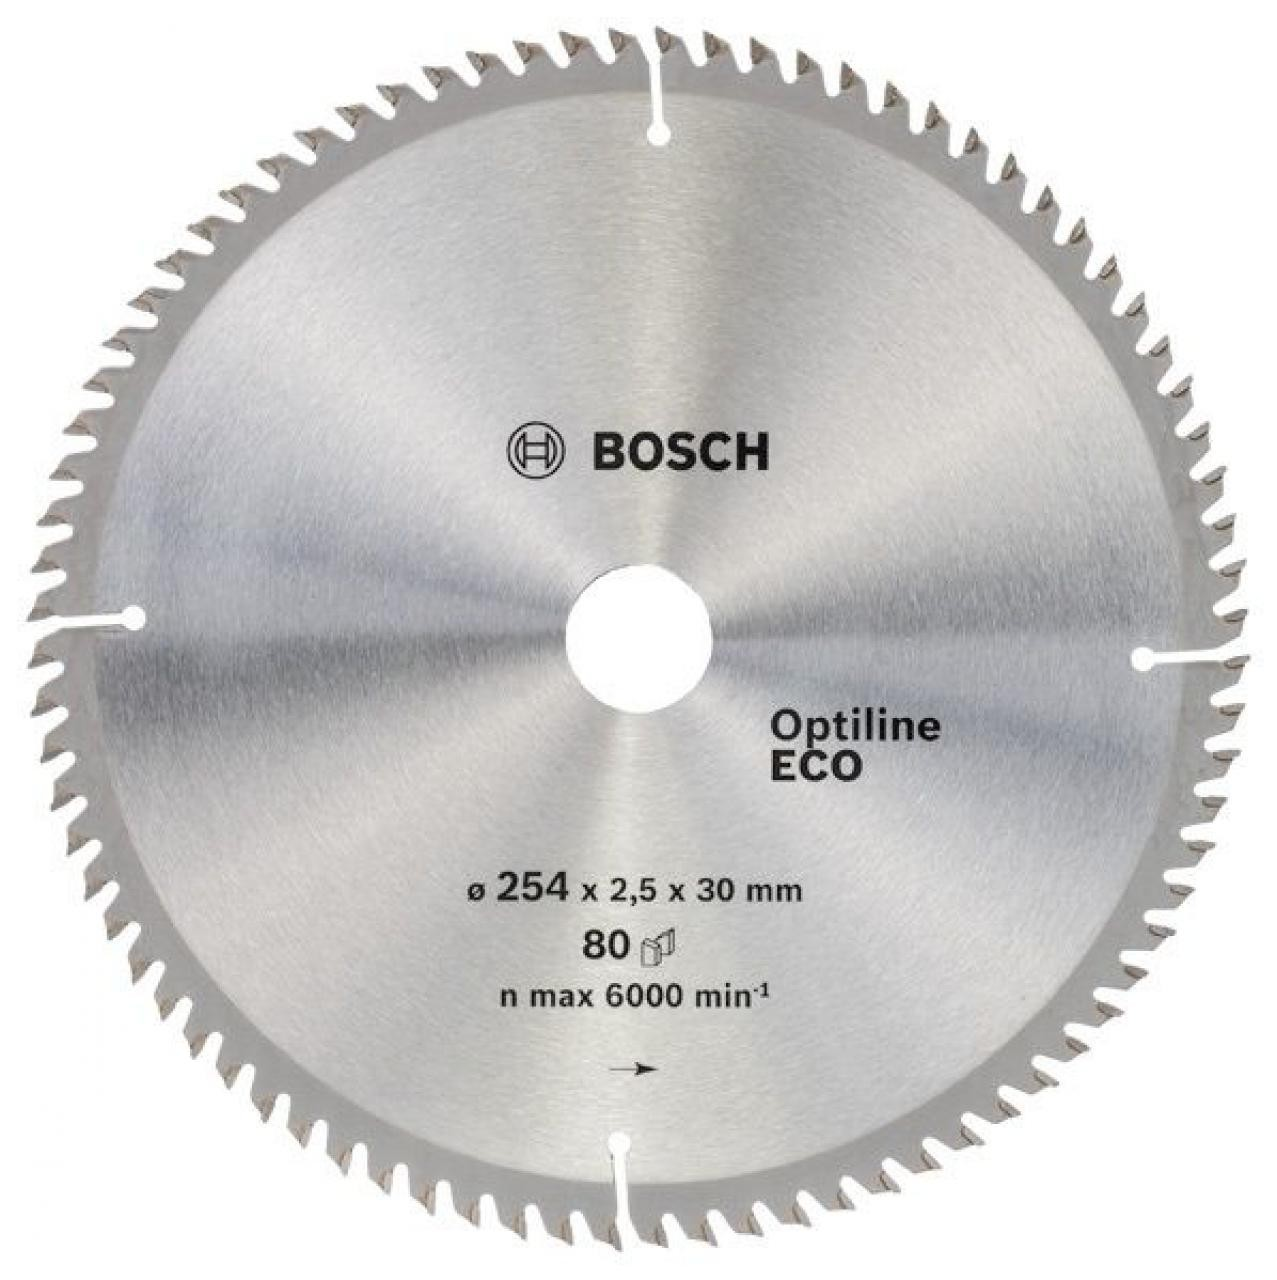 Диск пильный ф254х30 z80 Optiline Wood Eco BOSCH 2 608 641 796